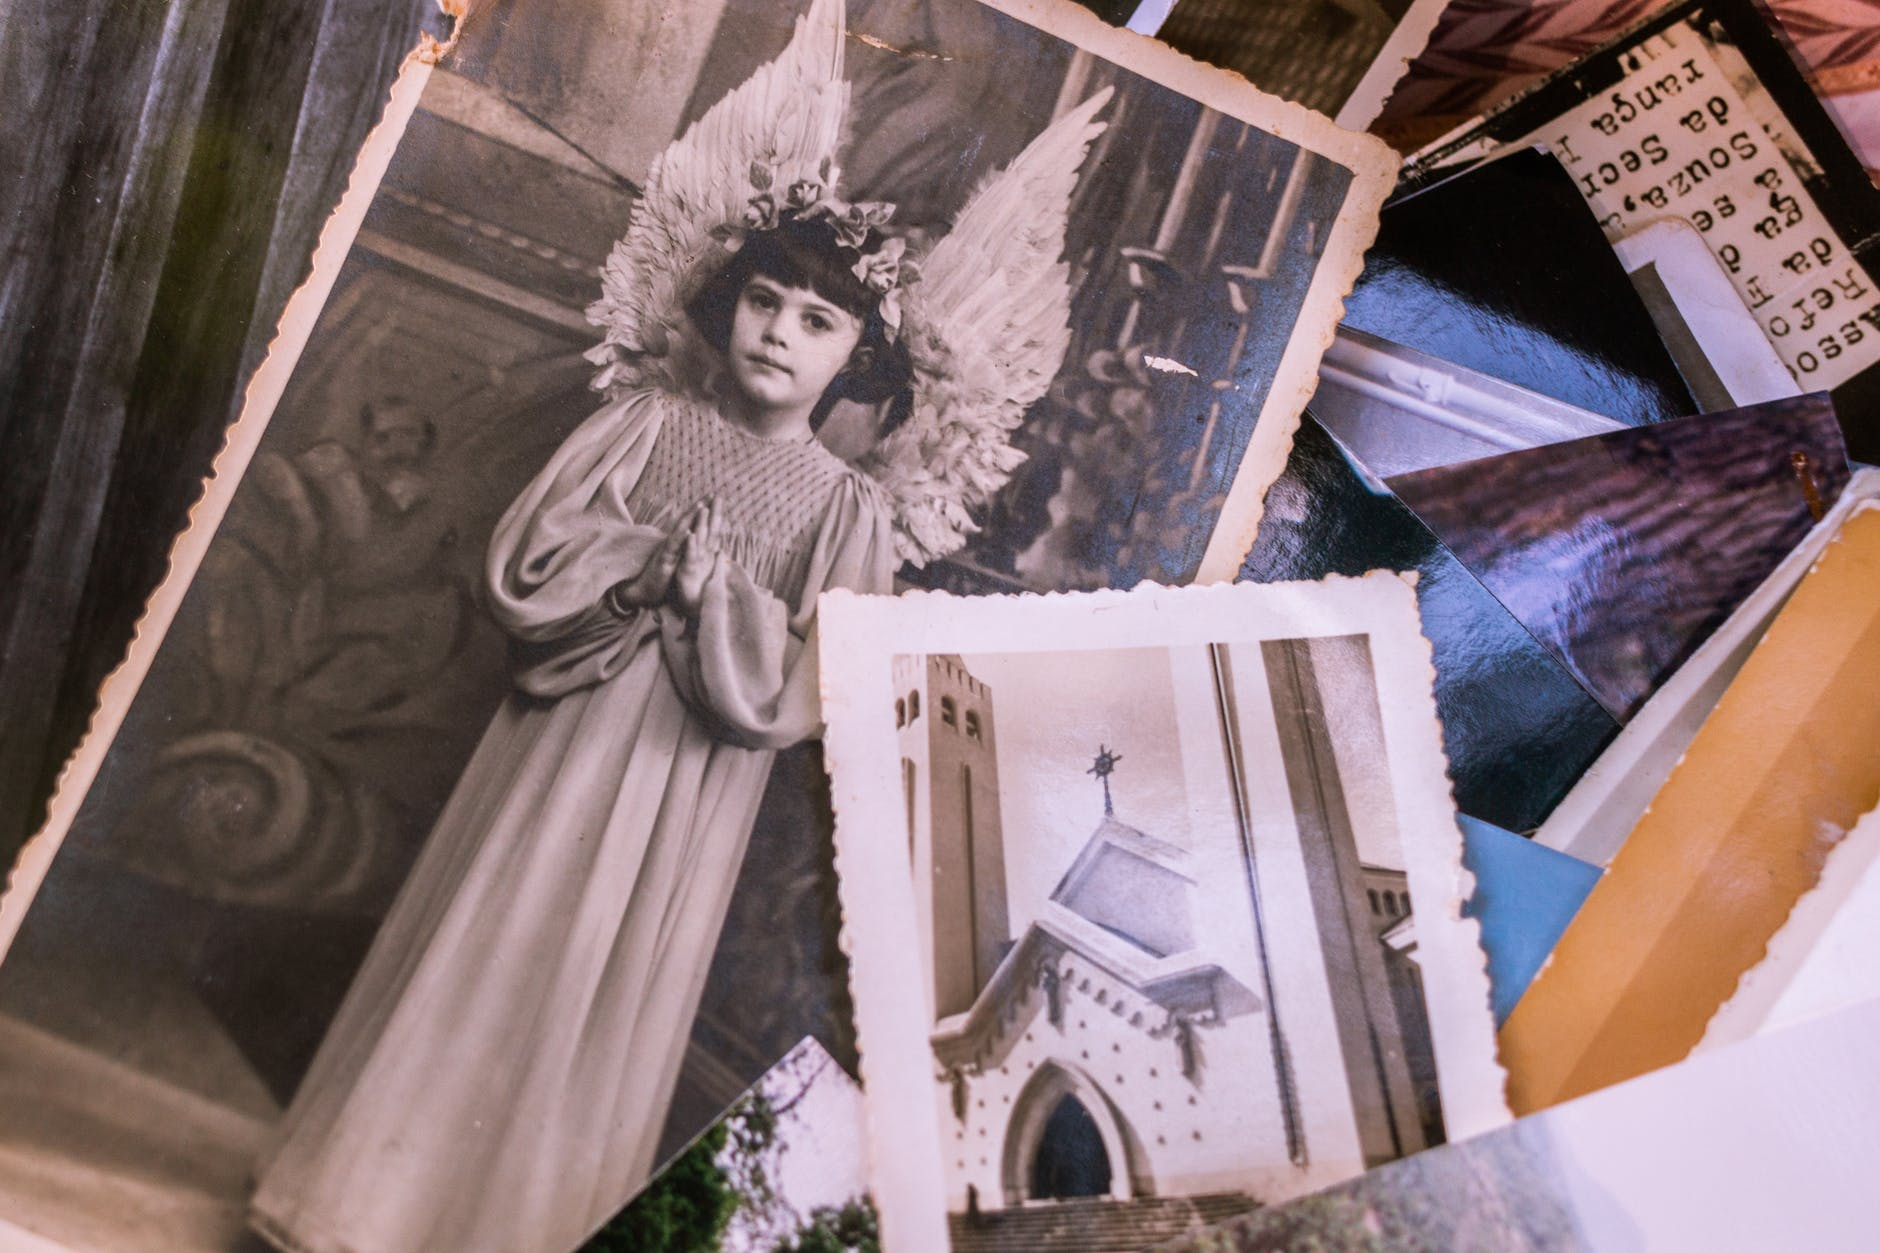 close up of old black and white photos of a young girl in an angel costume and a church